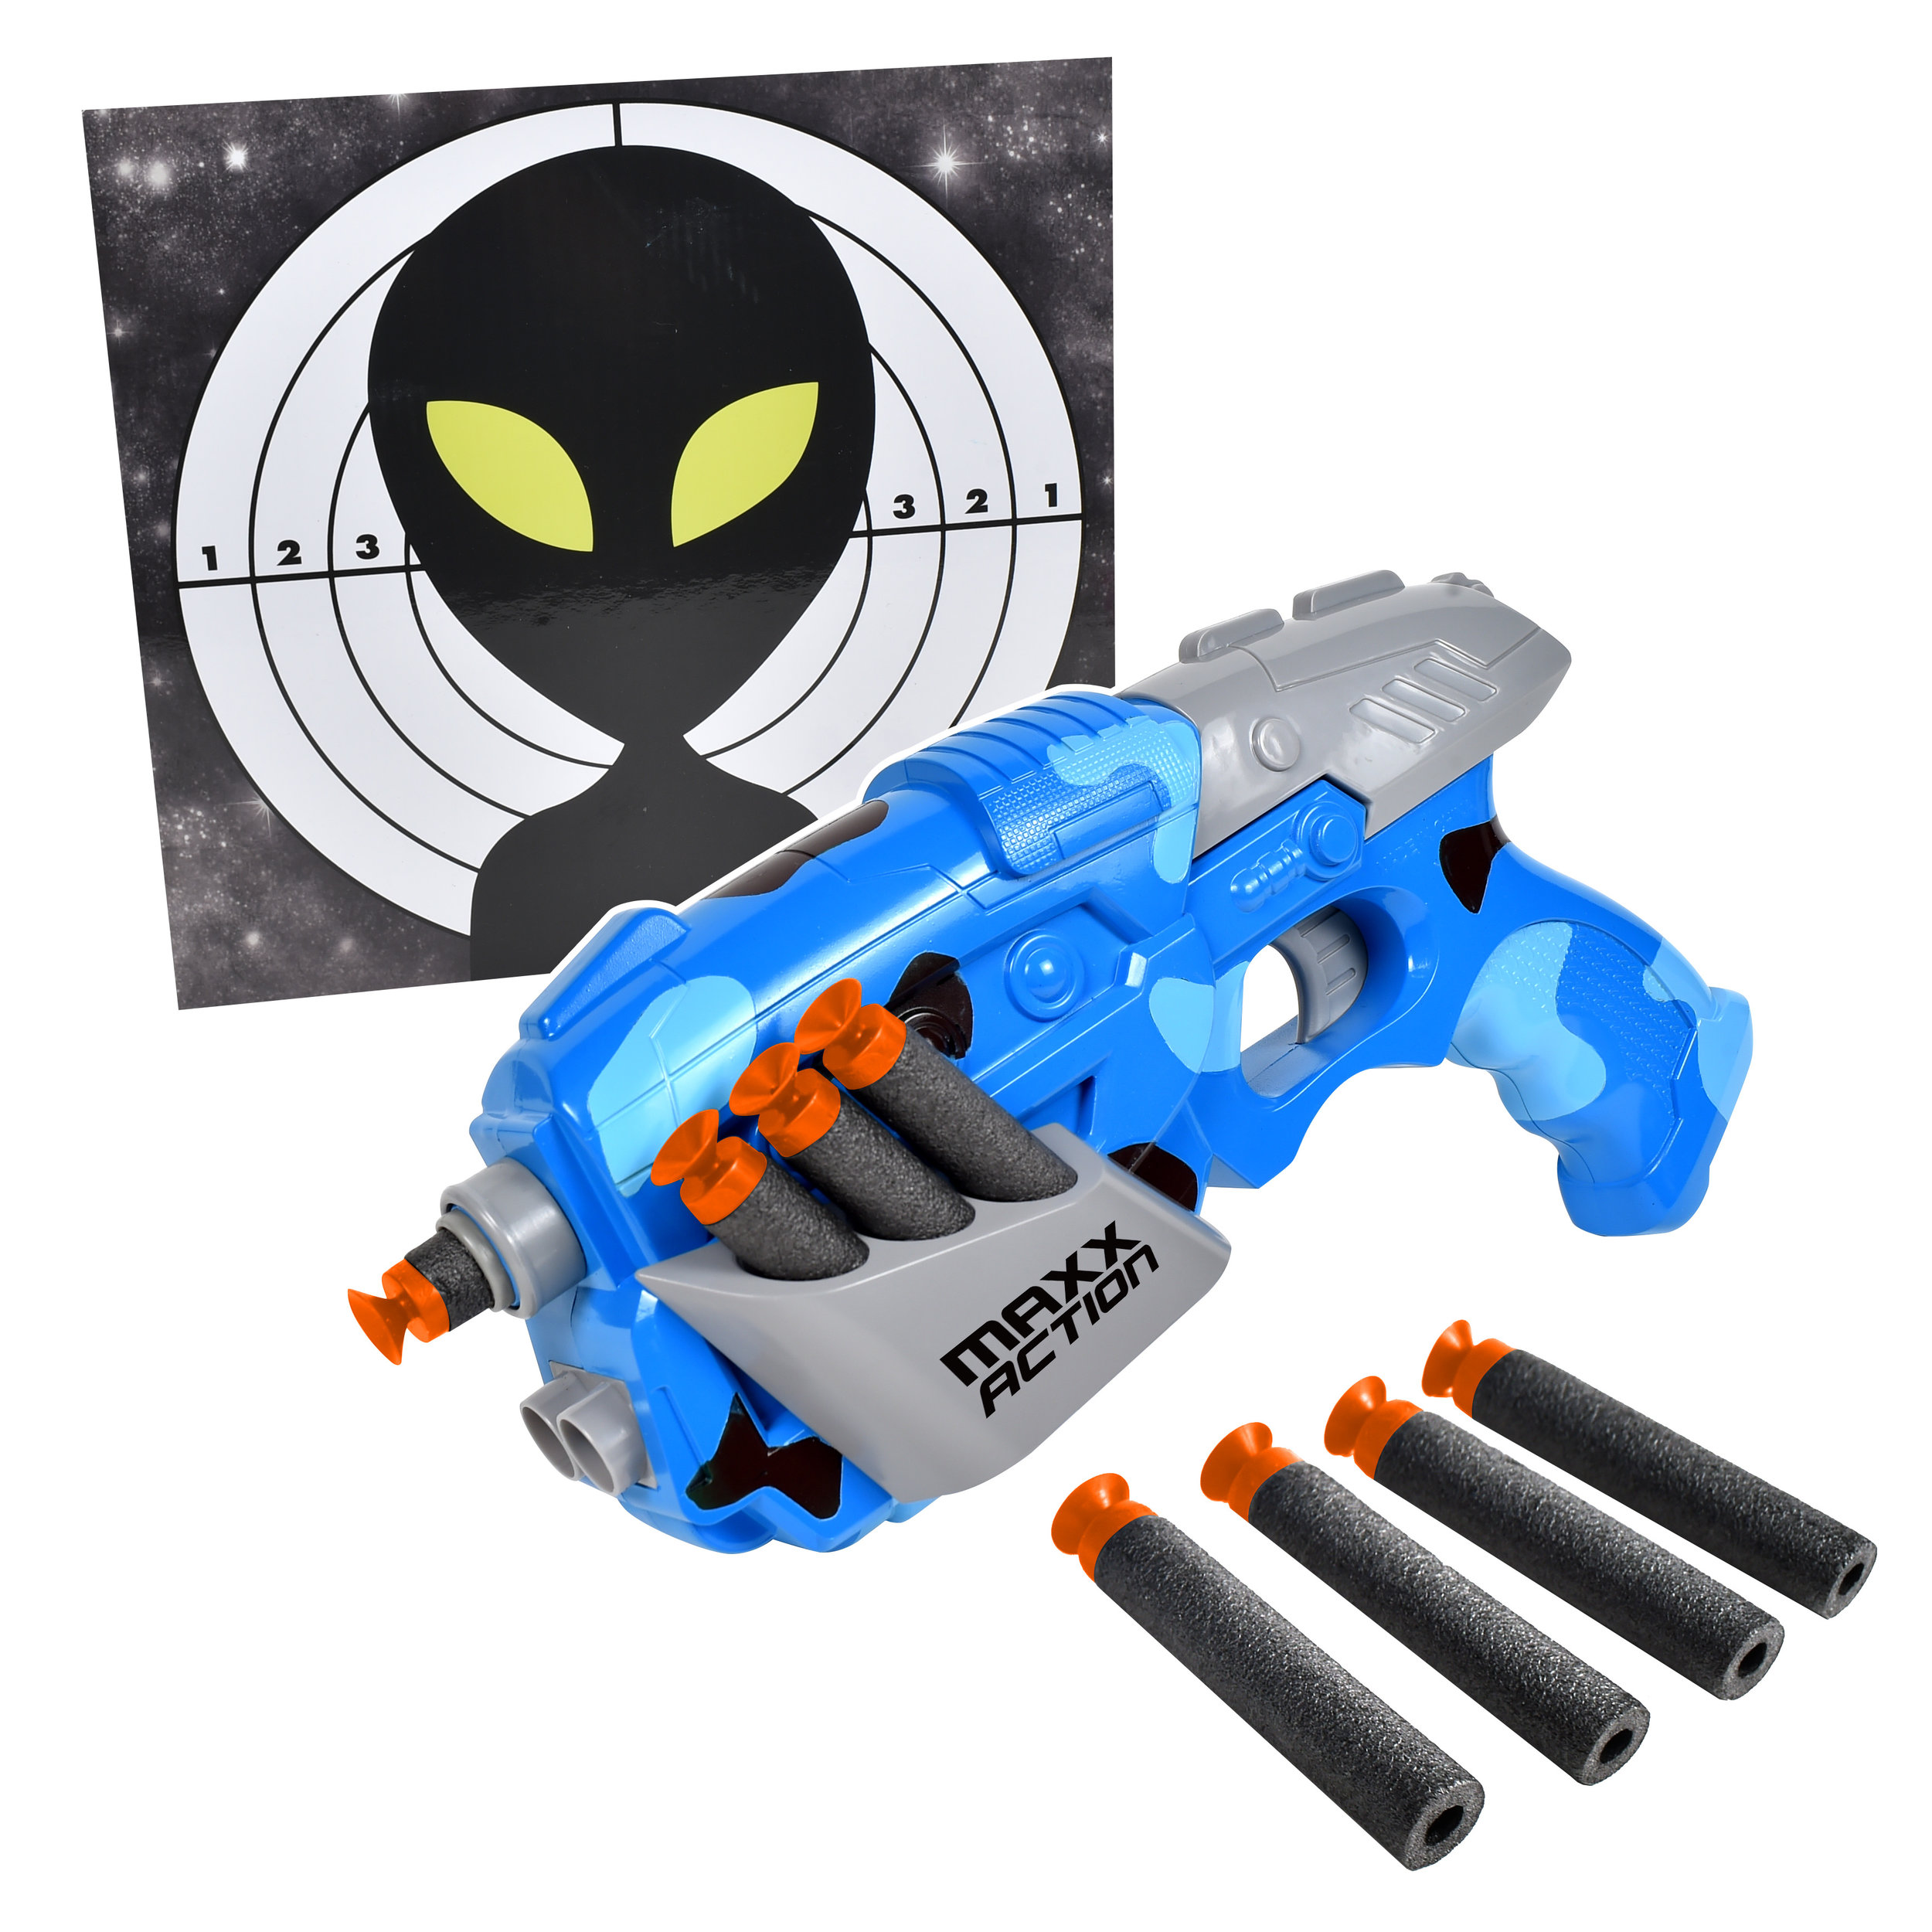 Maxx Action Alien Photon Blaster